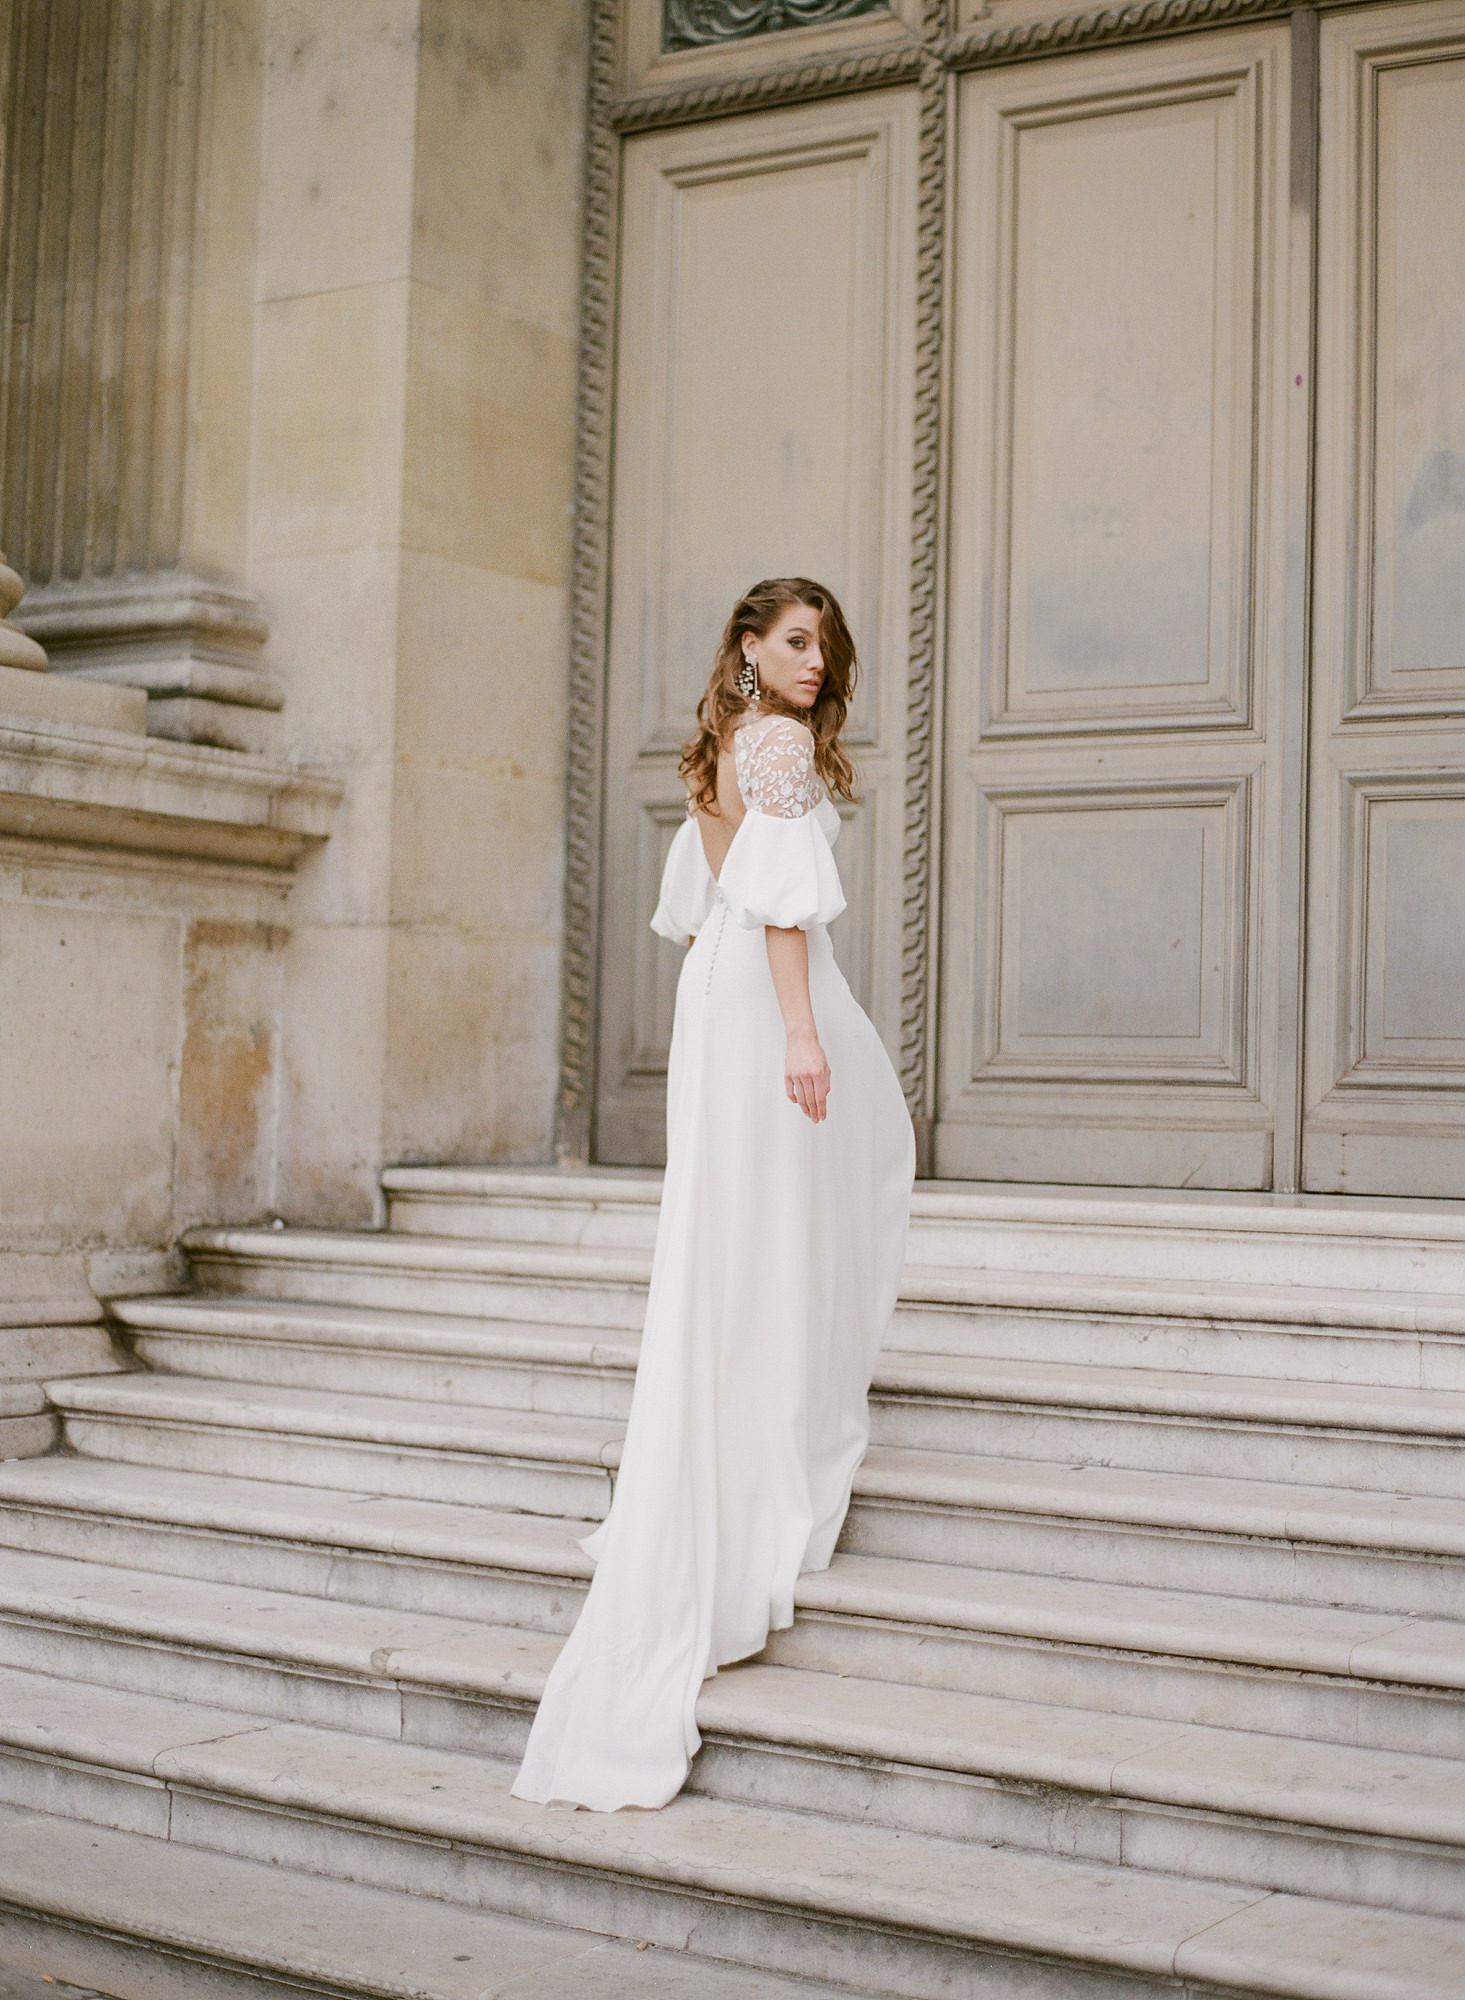 Bride on stairs of cathedral with ballon lace sleeves  - Gianluca Adovasio Photography